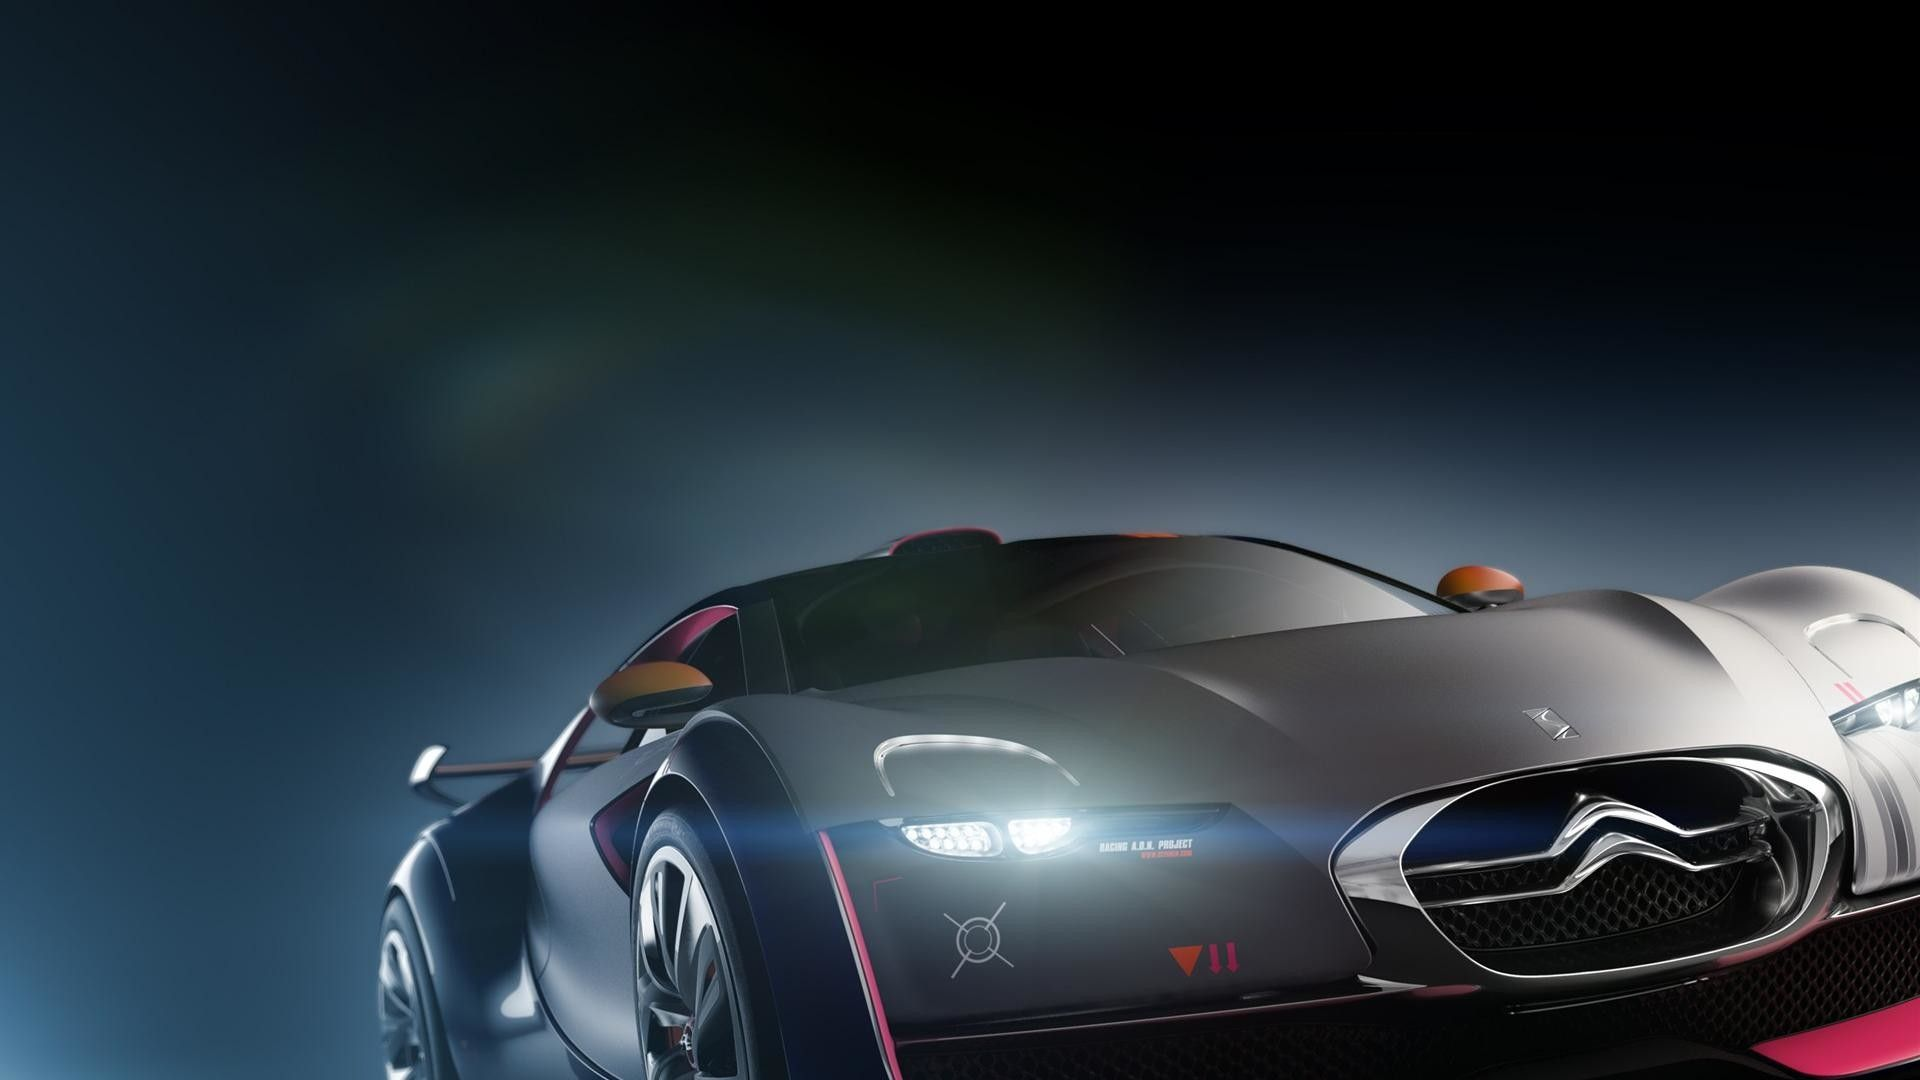 Sports Cars Wallpapers Hd 73 Images Sports Cars Wallpapers Hd 73 Images Looking For The Best Sports Cars Wallpapers Hd Voiture Sportive Grand Ecran Voiture